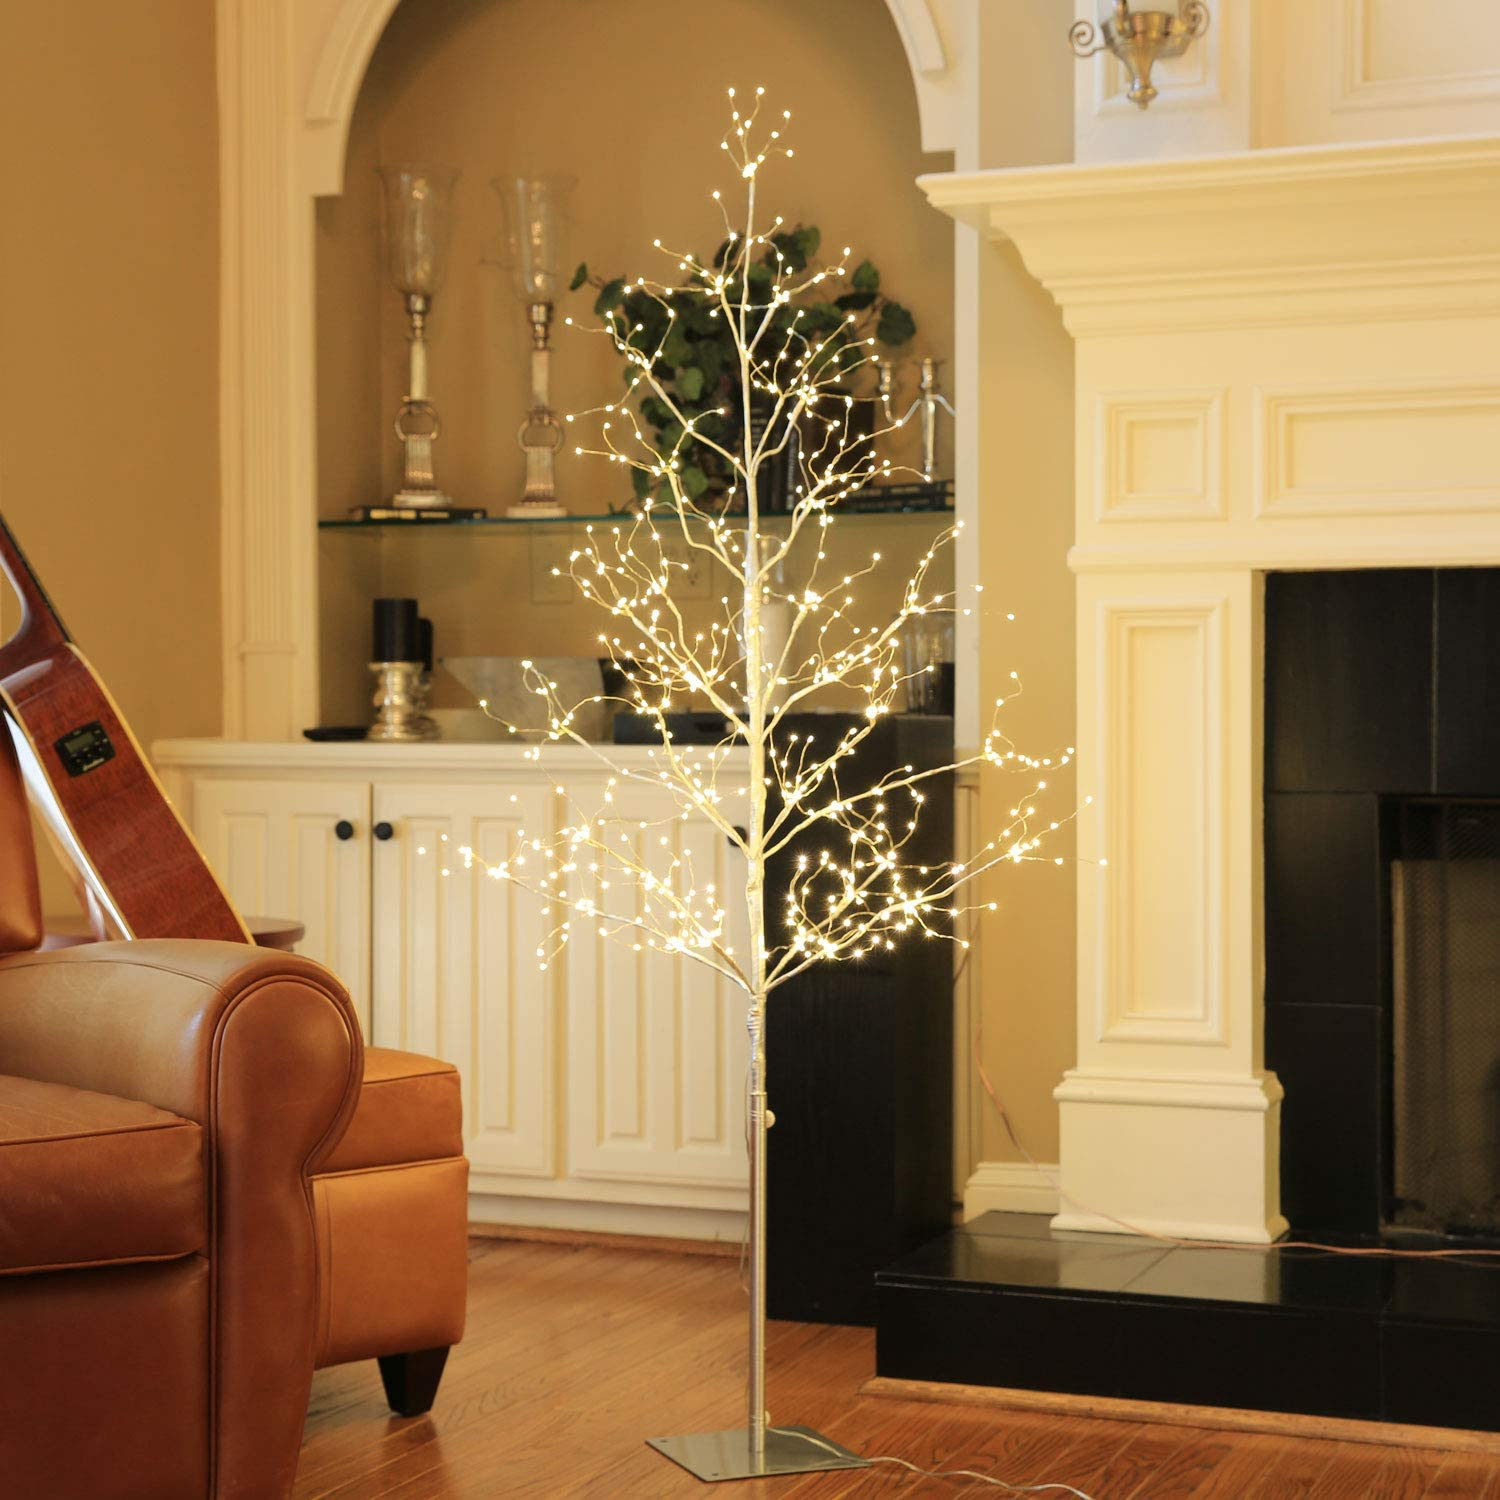 LIGHTSHARE 6 ft. LED Tree - 750L Starlit Tree Collection with Warm White LED Angel Lights, Silver, Perfect for Home Décor Holiday Party Wedding